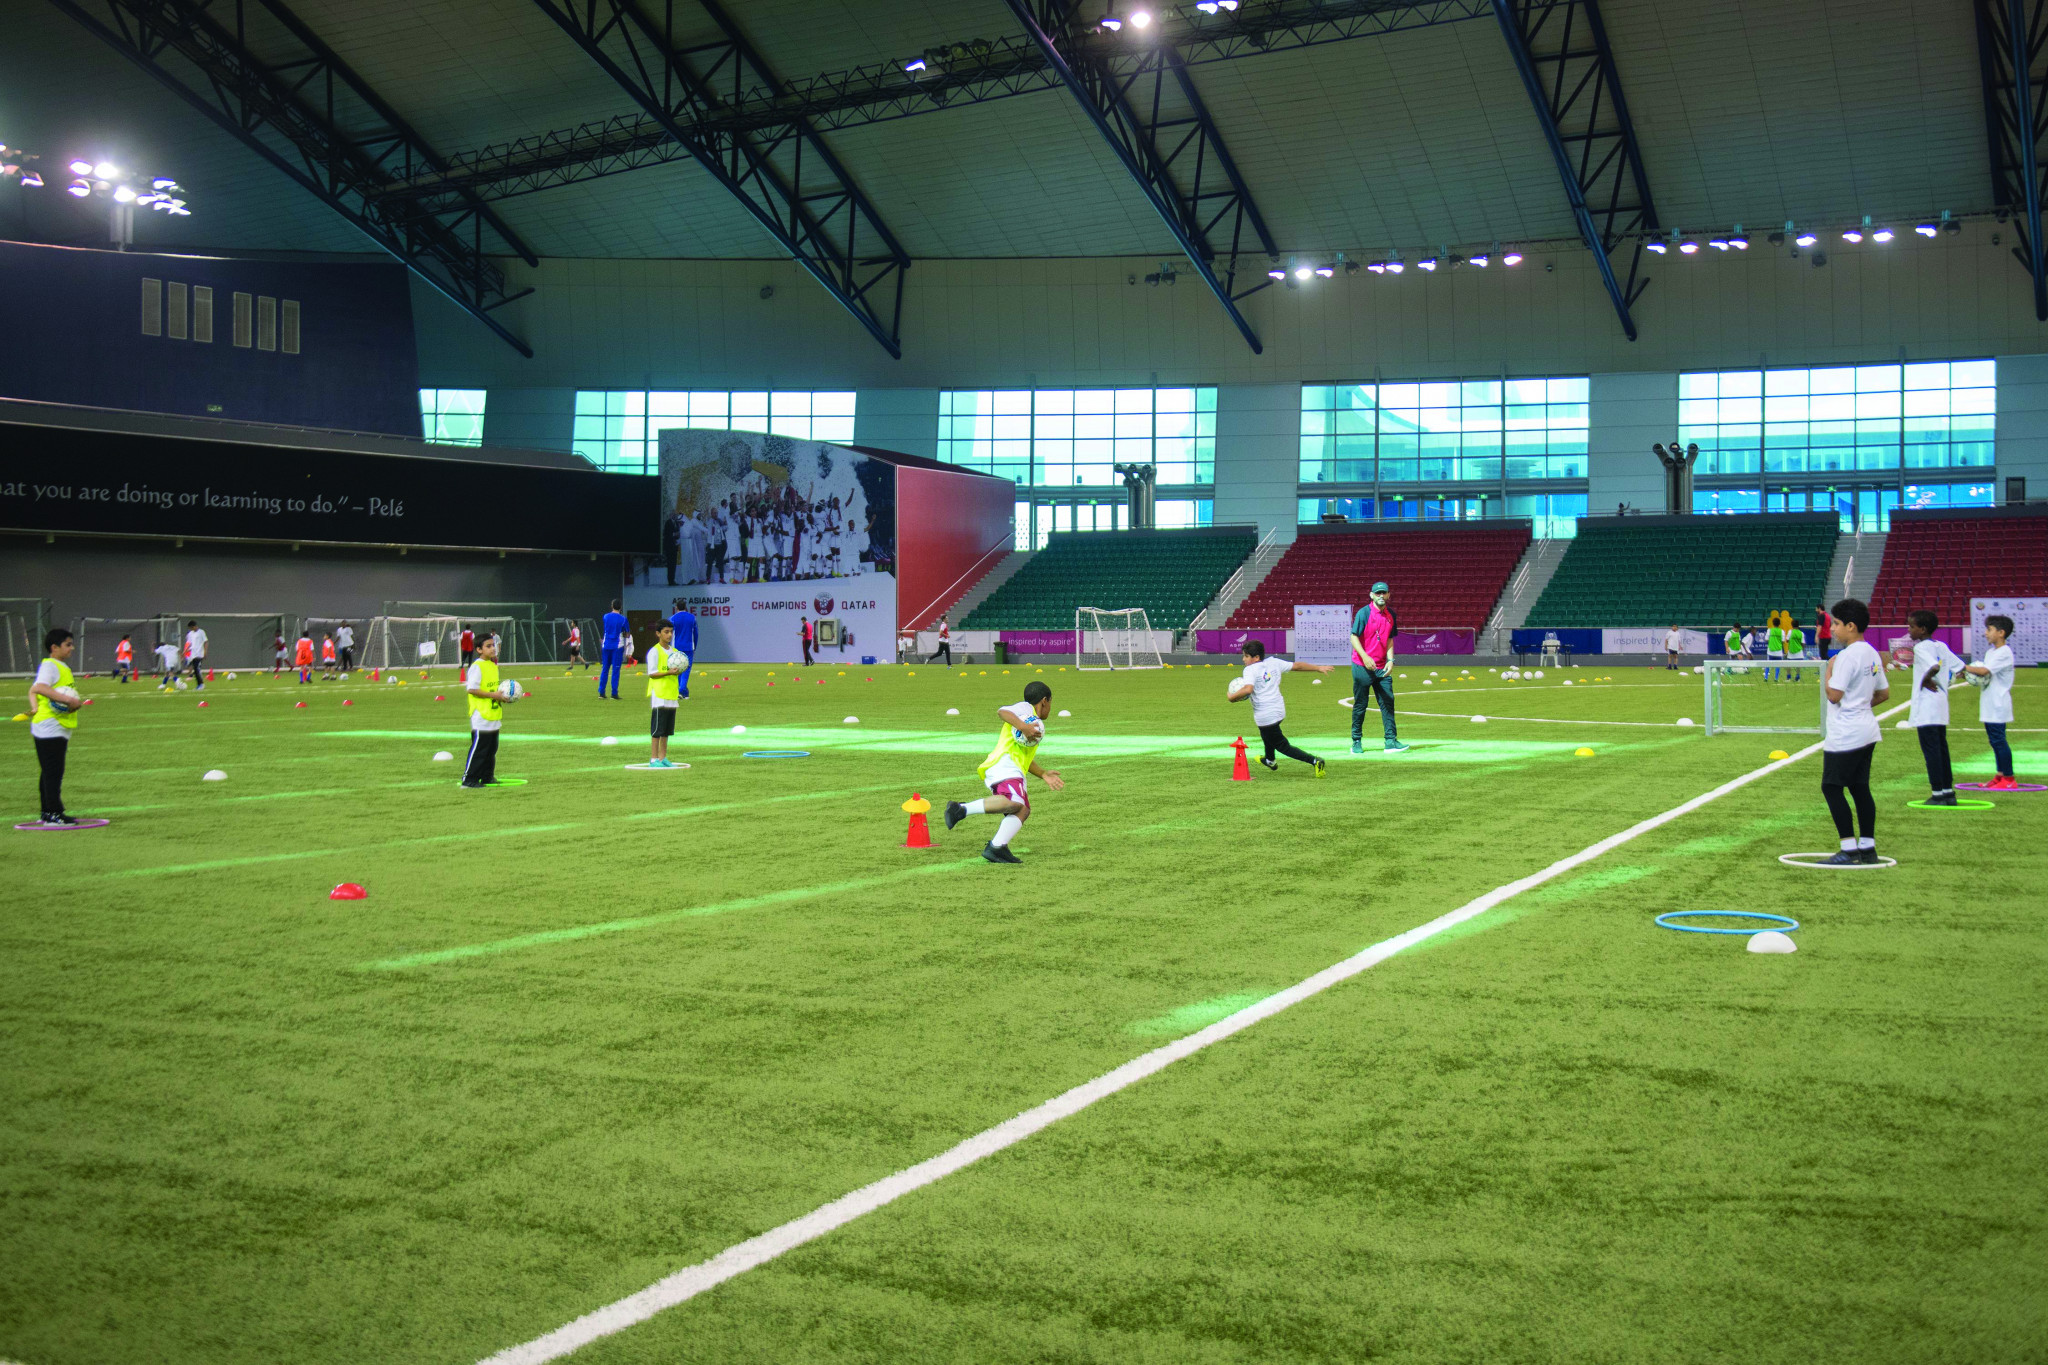 Doha 2030 will use existing facilities as part of its legacy programme ©Doha 2030